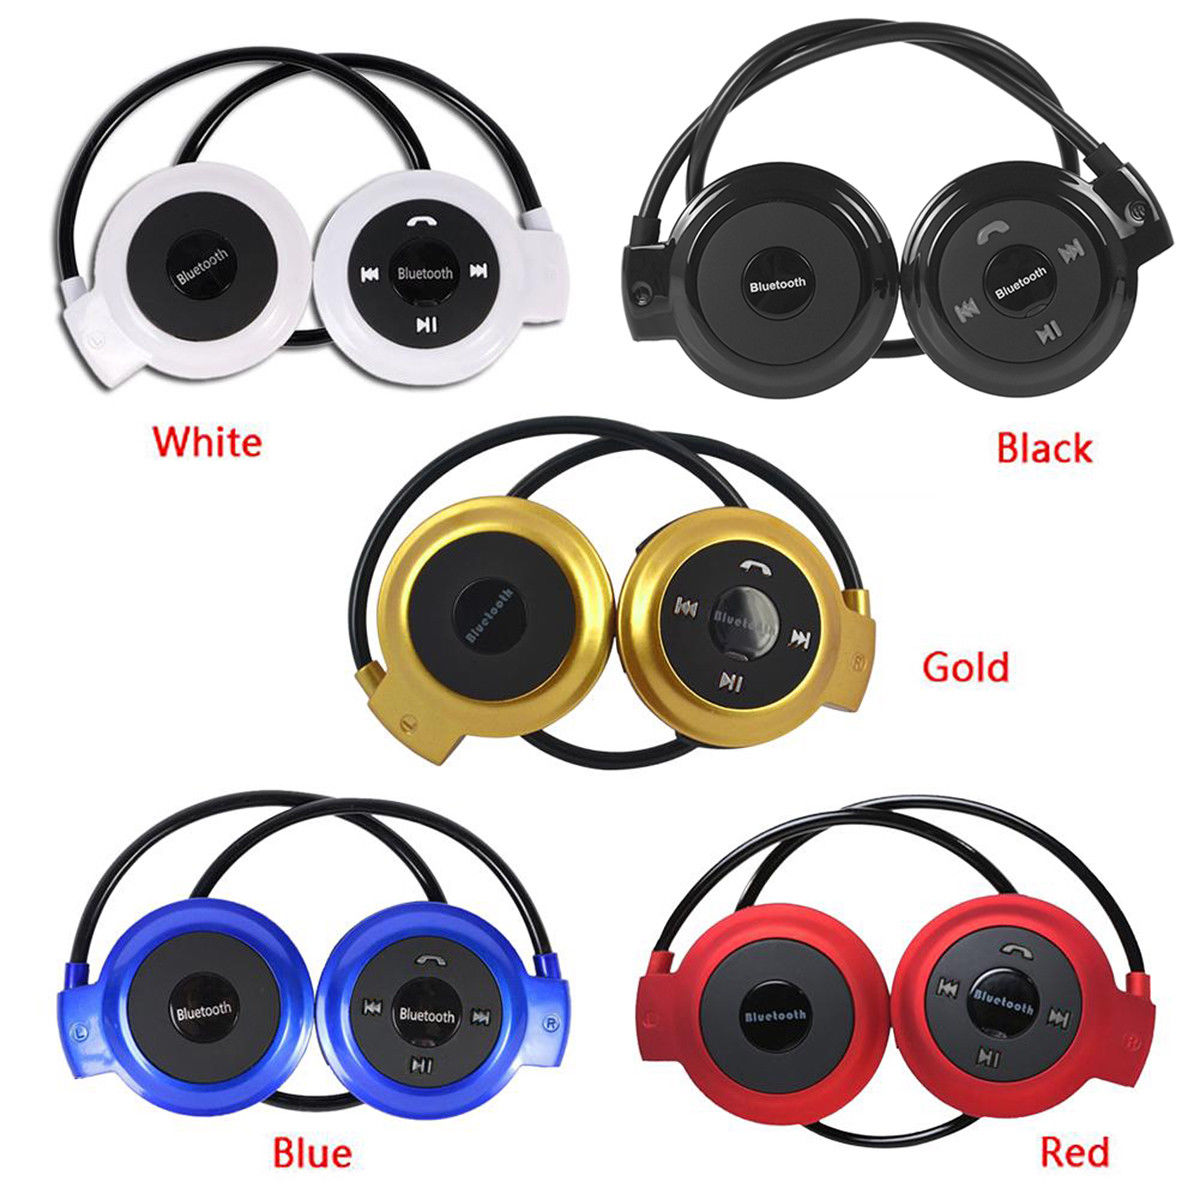 MINI503 Sport Wireless Bluetooth Headphones Stereo Earphones Mp3 Music Player Headset Earpiece Micro SD Card Slot FM Radio Mic stylish neckband headphones mp3 player headset w fm tf card slot blue black